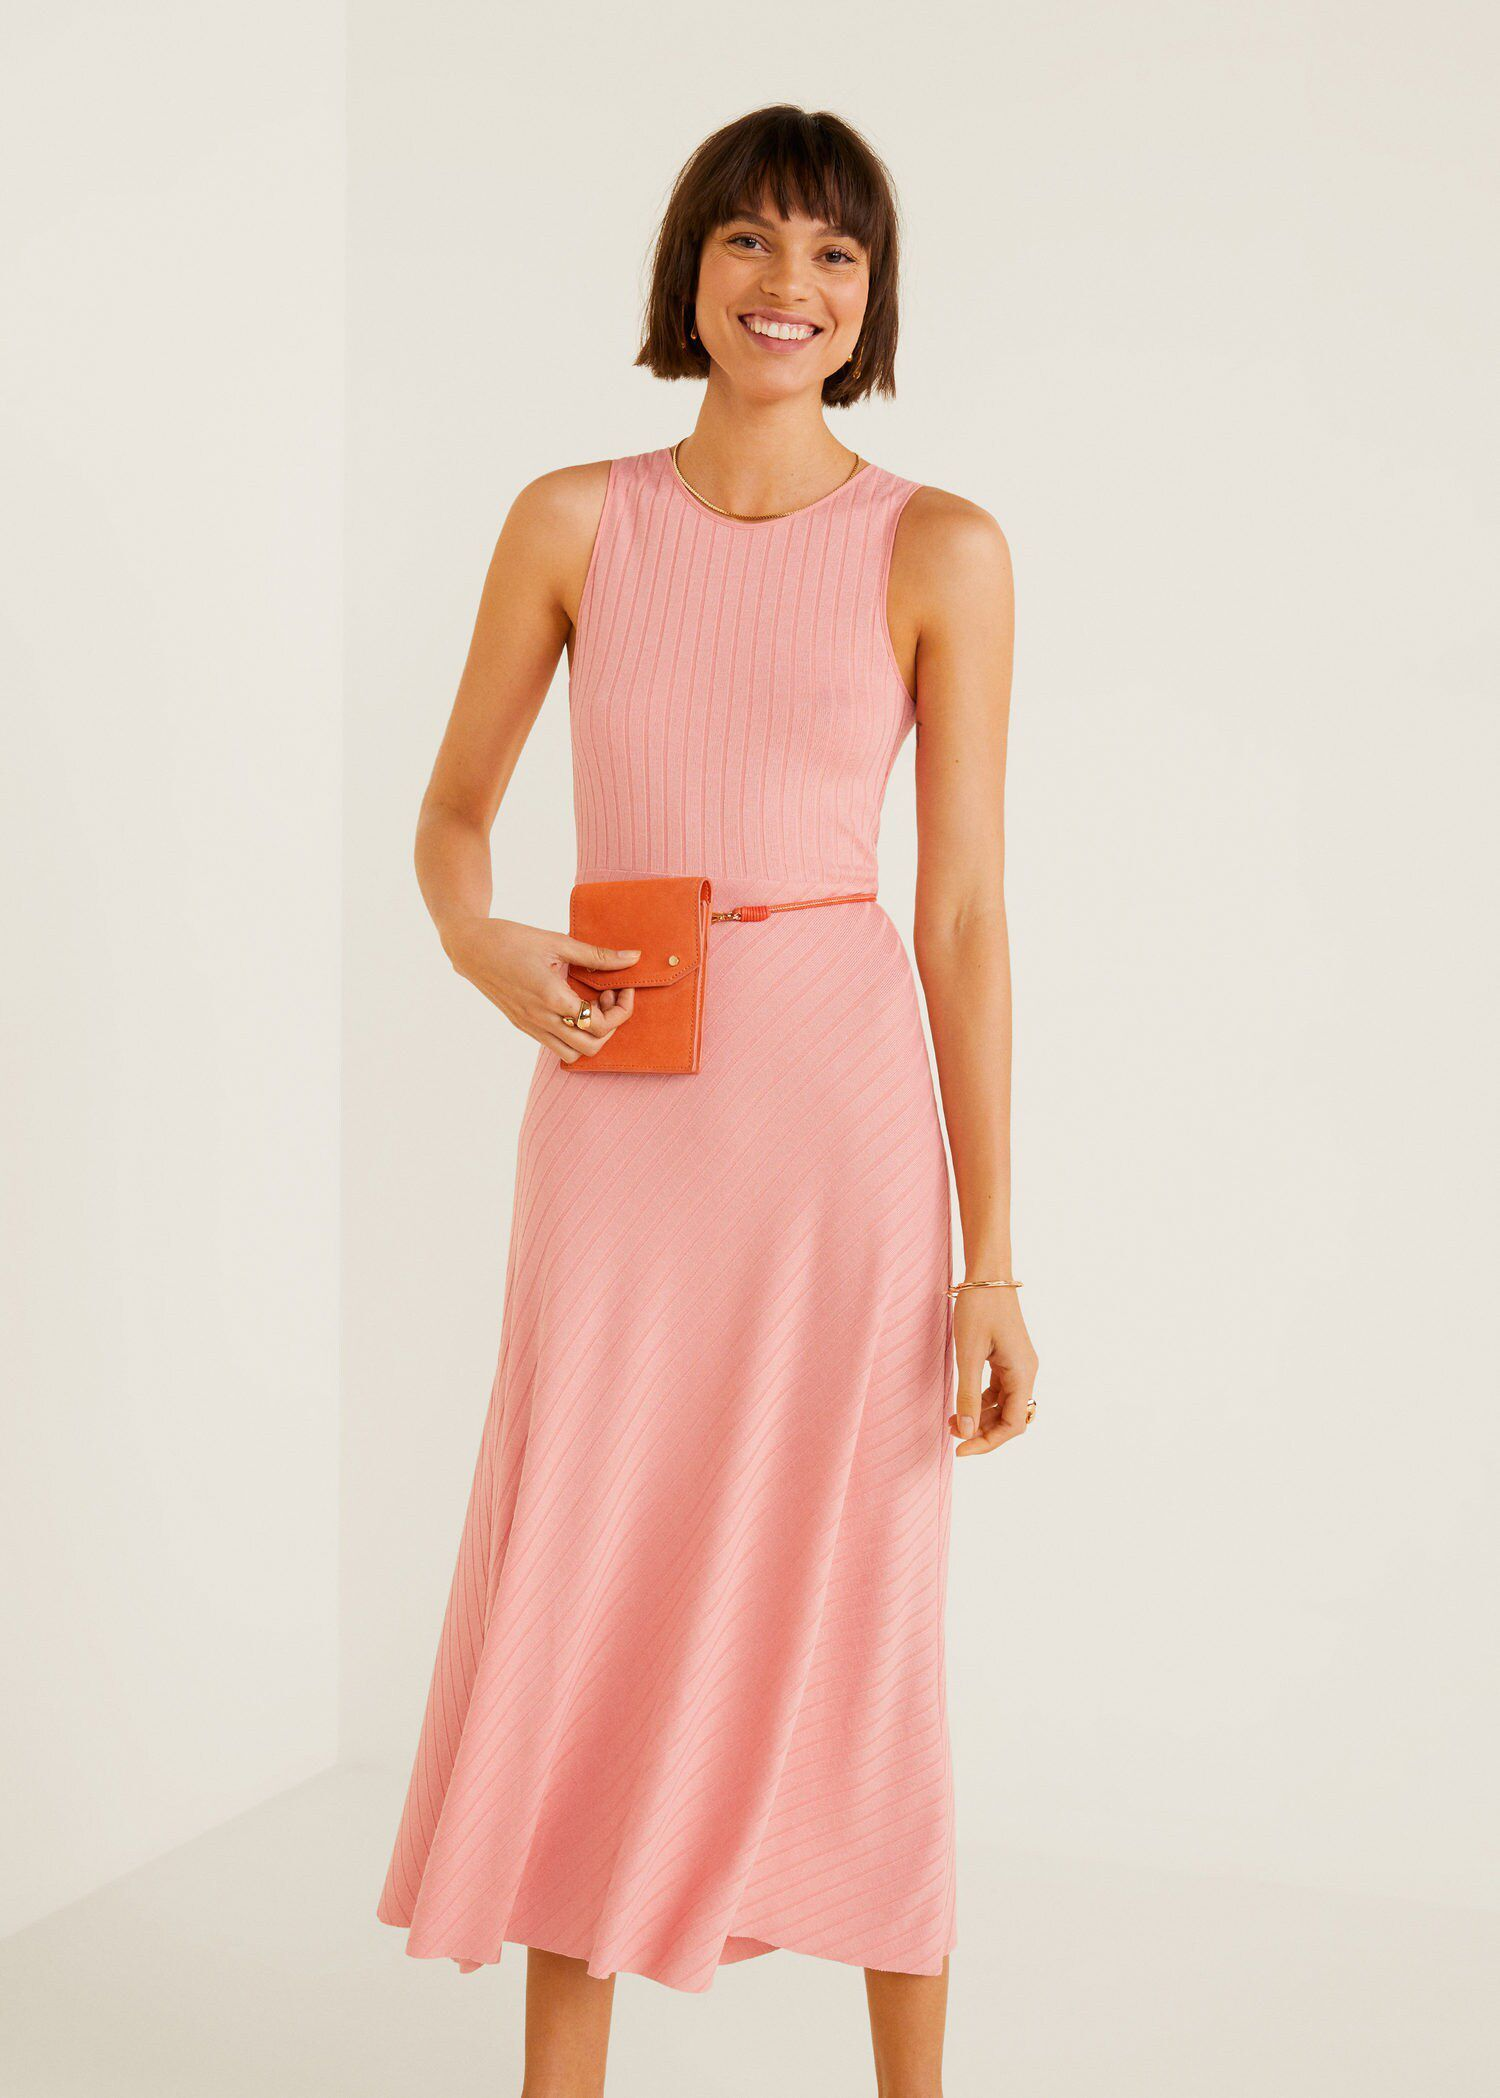 934b3849 15 Cheap Clothing Websites to Shop on a Budget - Cheap, Affordable Clothes  2018